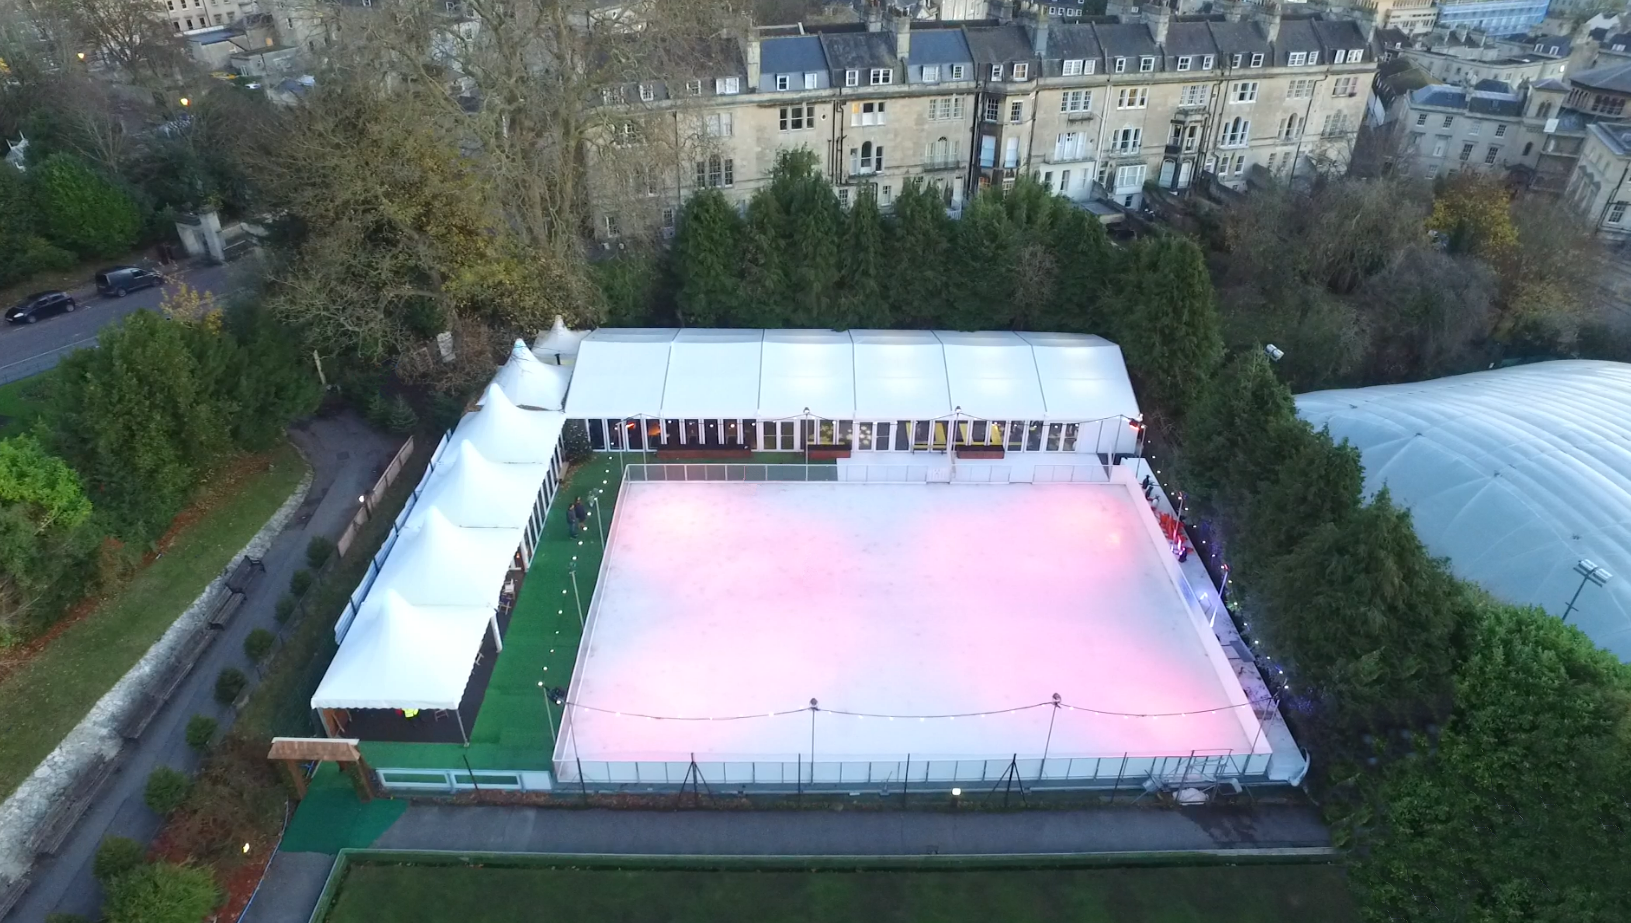 Bath on Ice Drone View